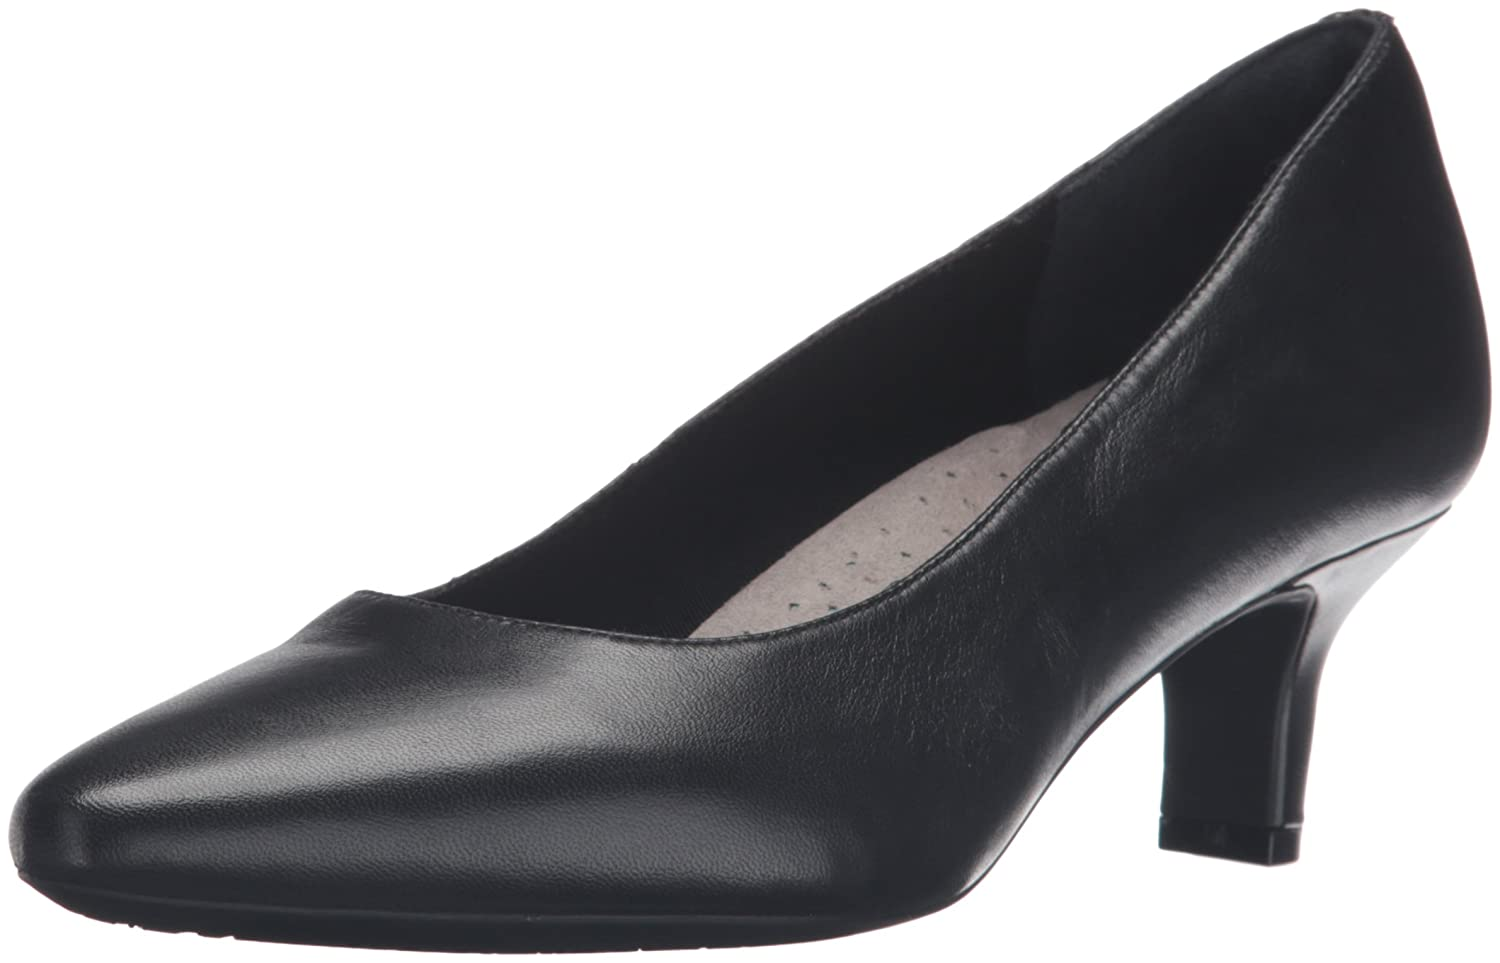 Rockport Women's Kimly Kirsie Dress Pump B01D3NN930 9 W US|Black Smooth